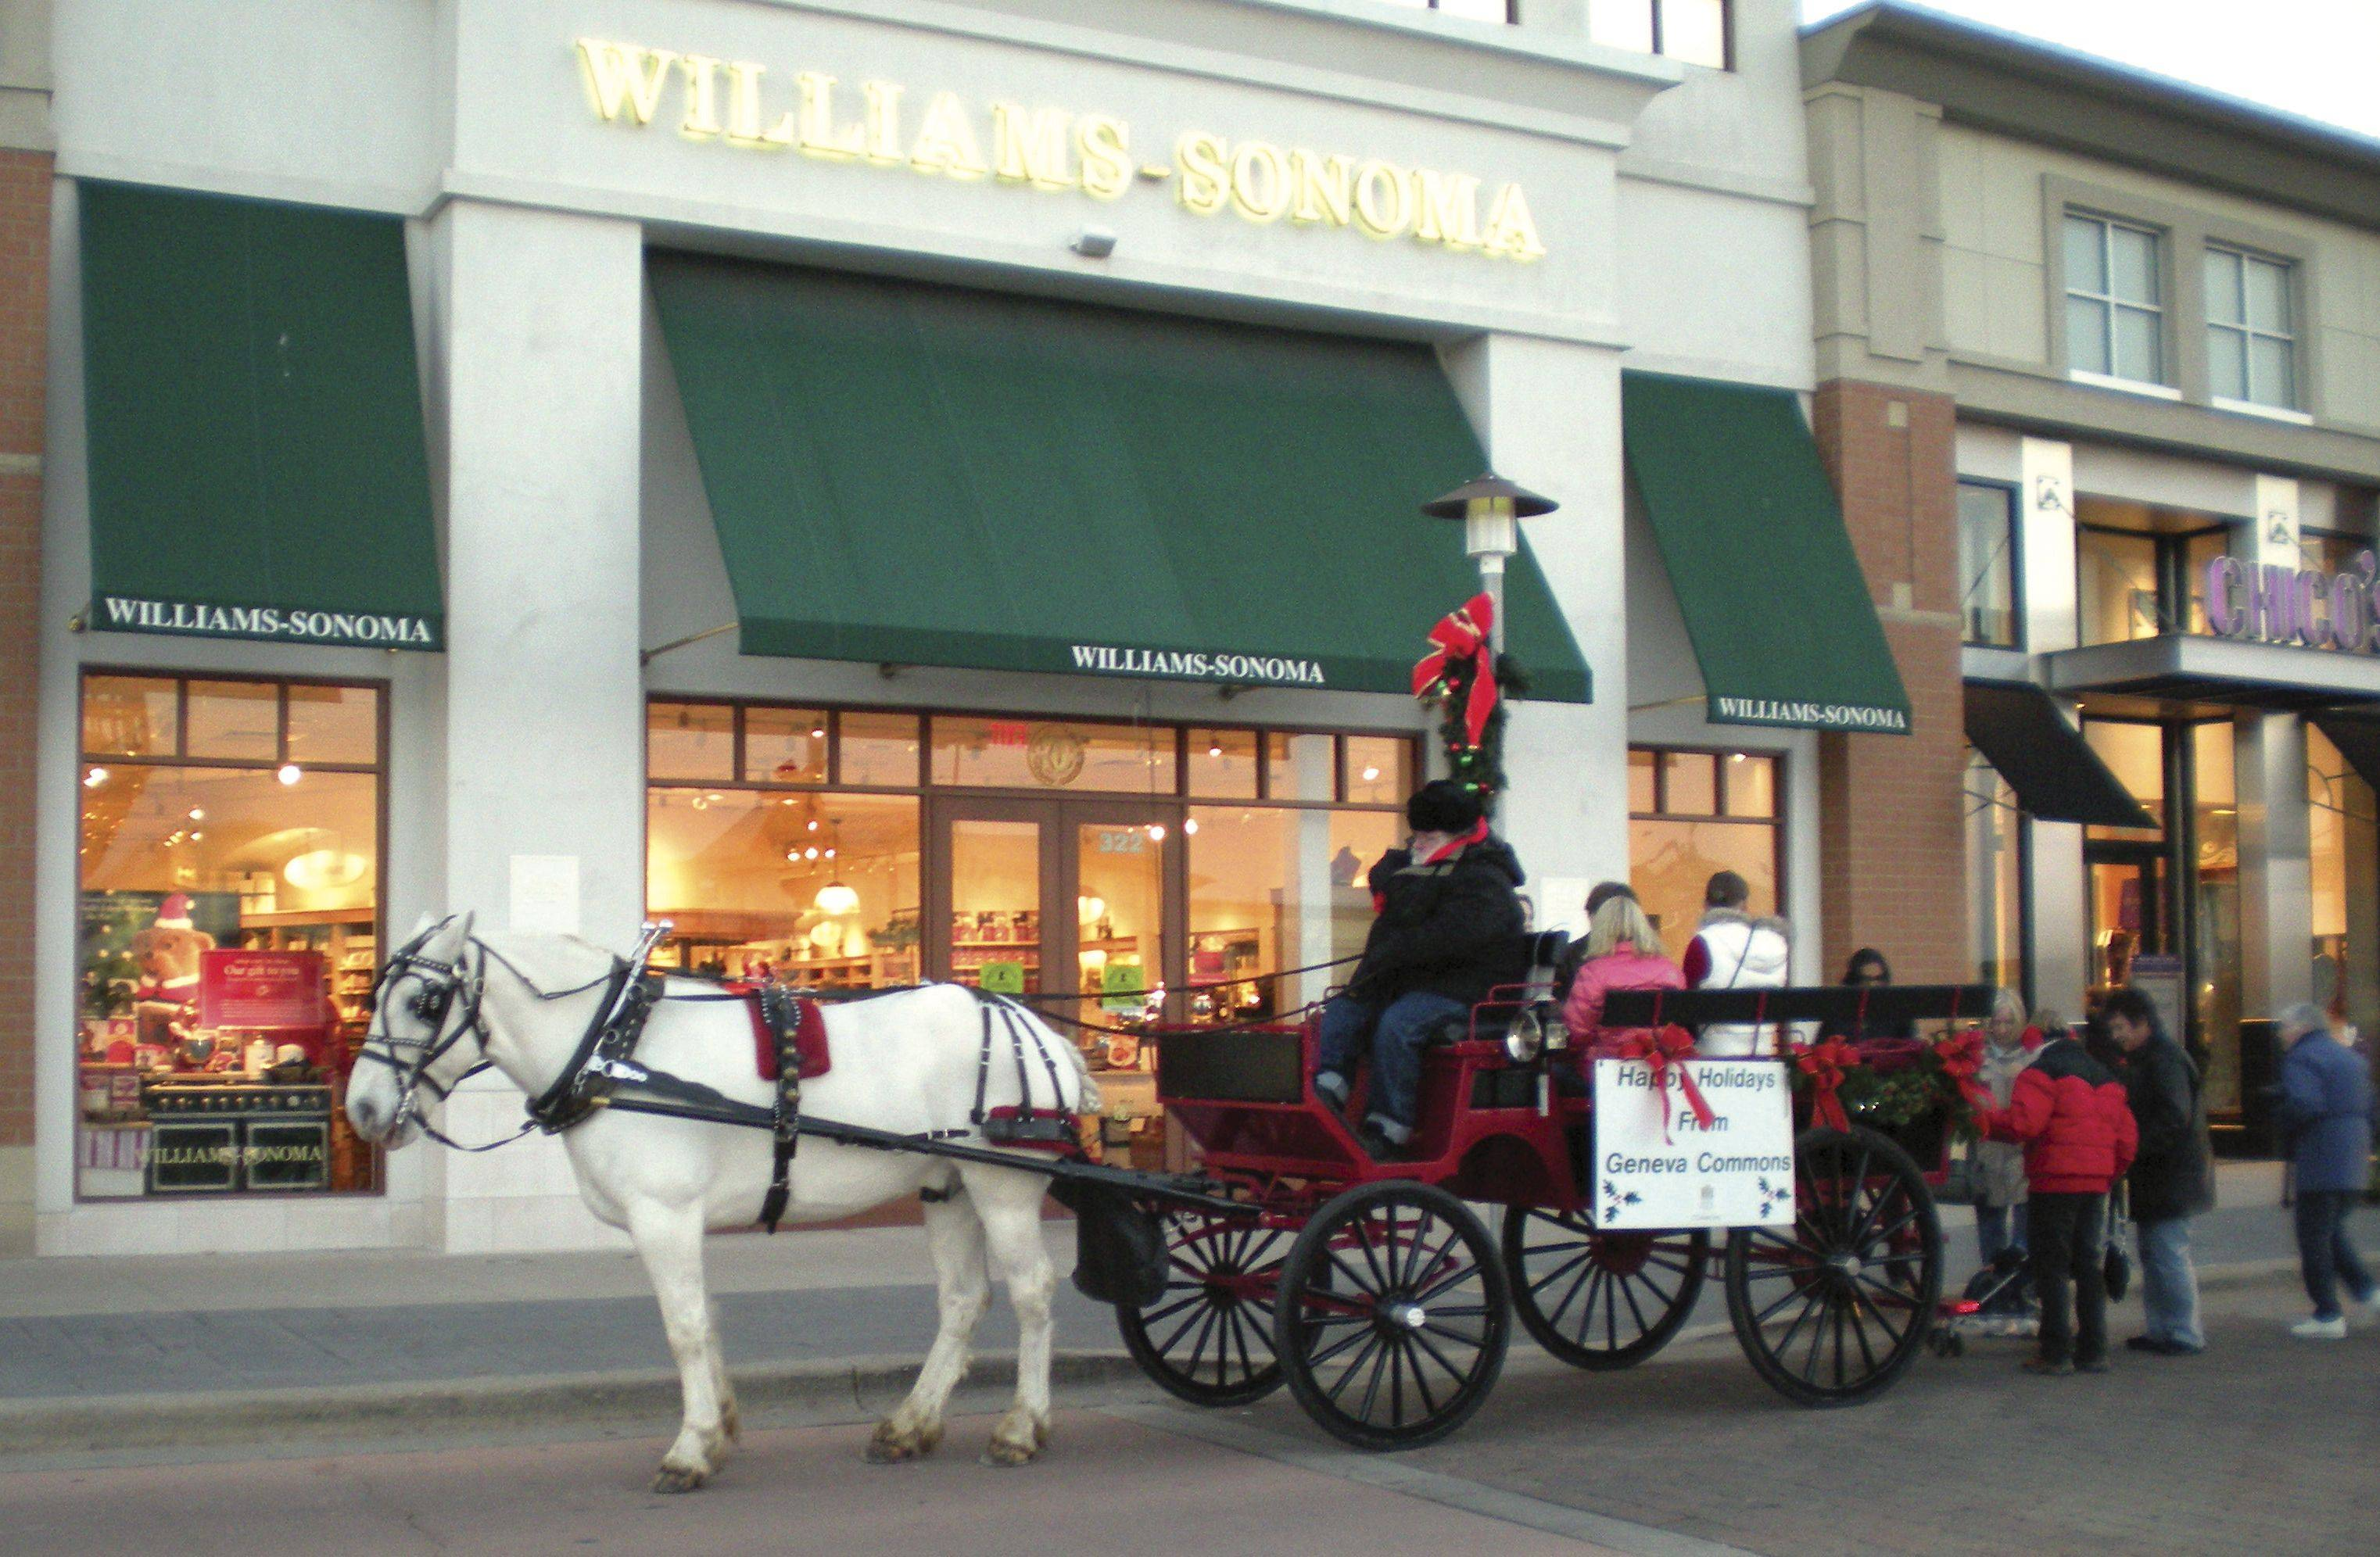 Horse-drawn carriage rides will be available at Geneva Commons from noon to 4 p.m. Sunday, Dec. 11.